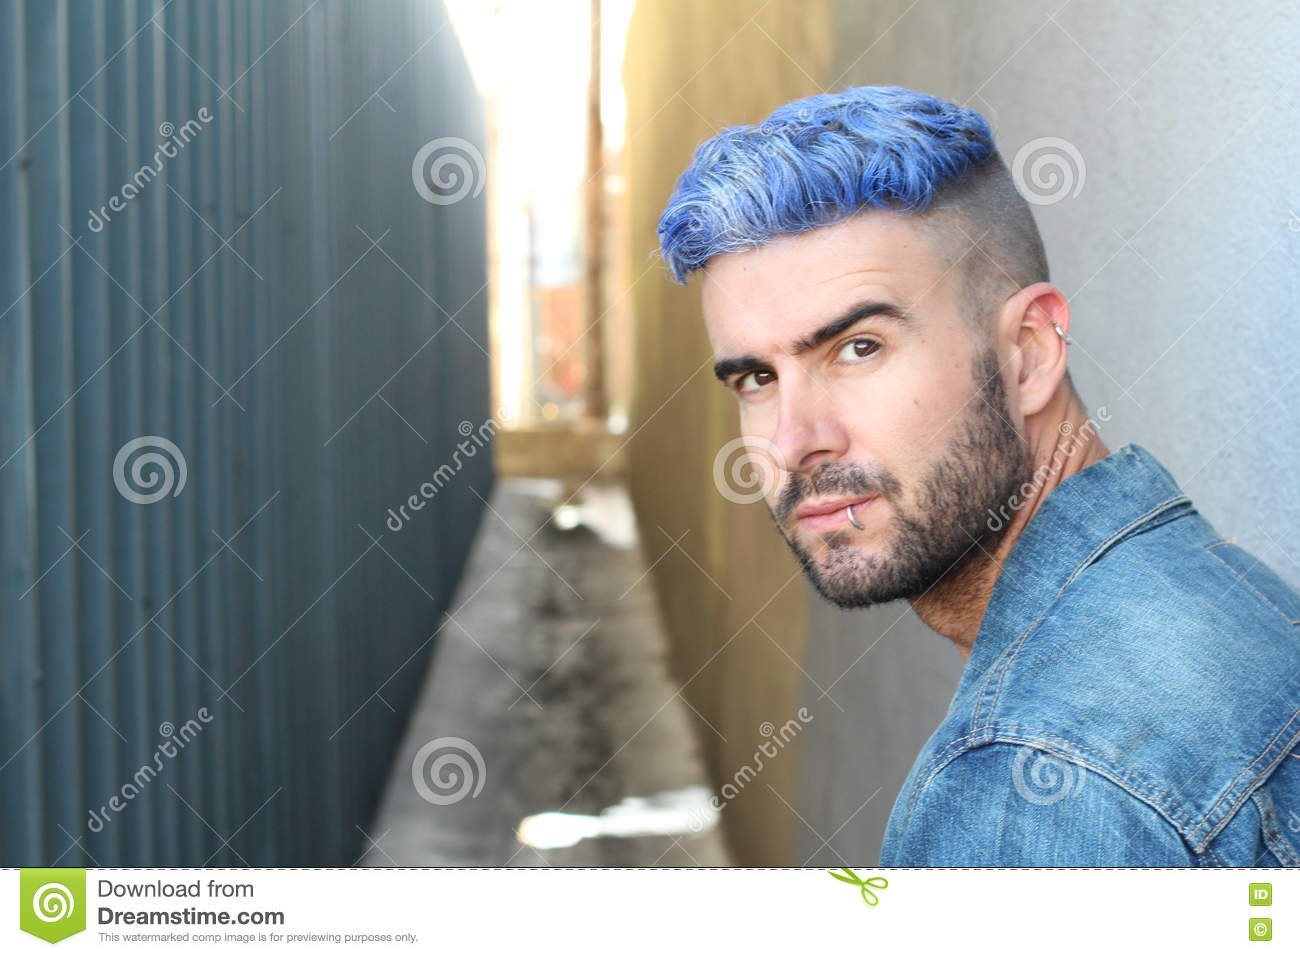 Handsome Stylish Young Man With Artificially Coloured Blue Dyed Hair